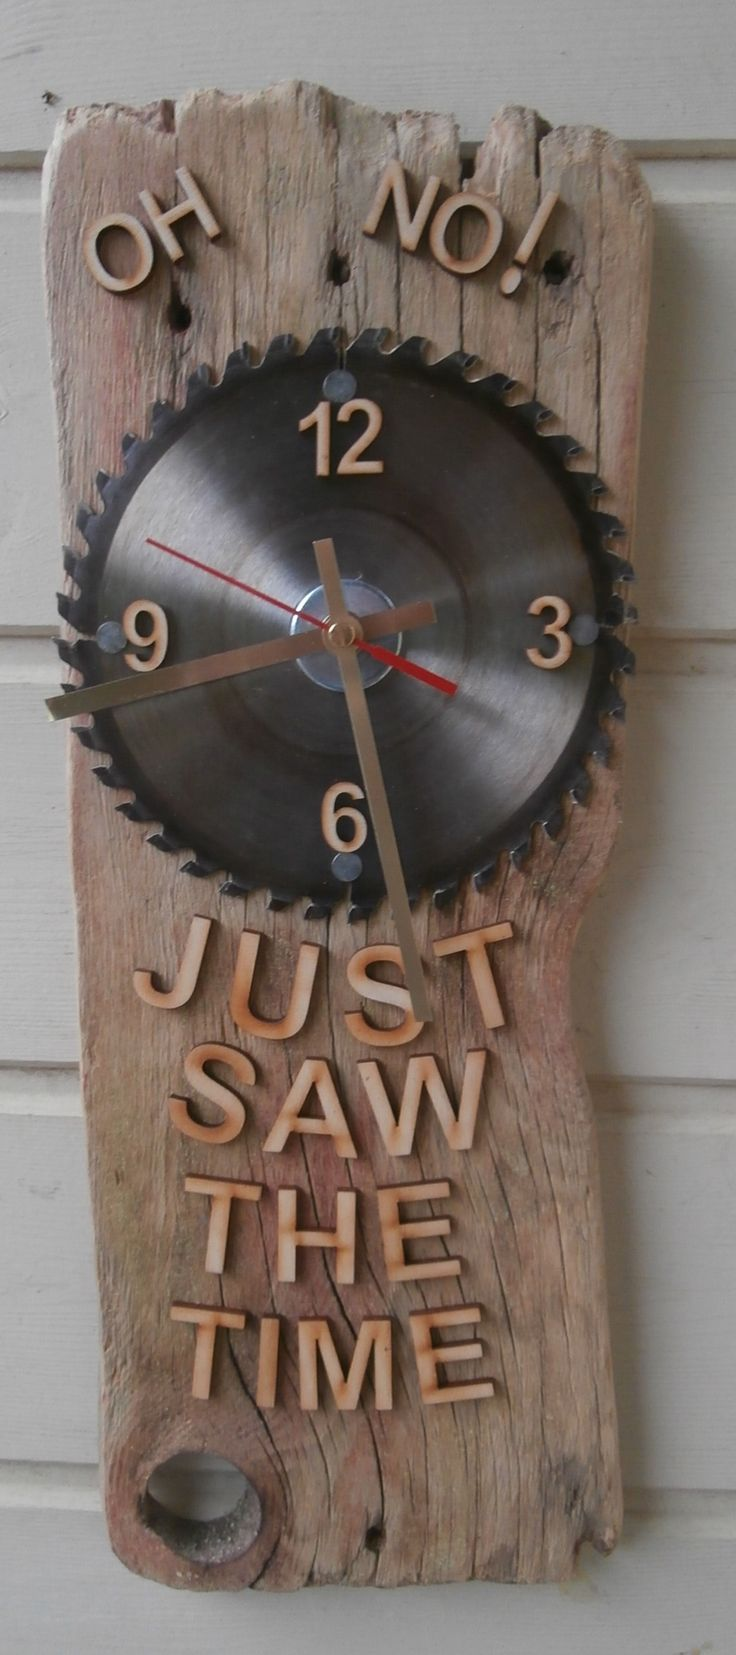 Am americana country wall clocks - Amazing And Affordable Diy Clocks